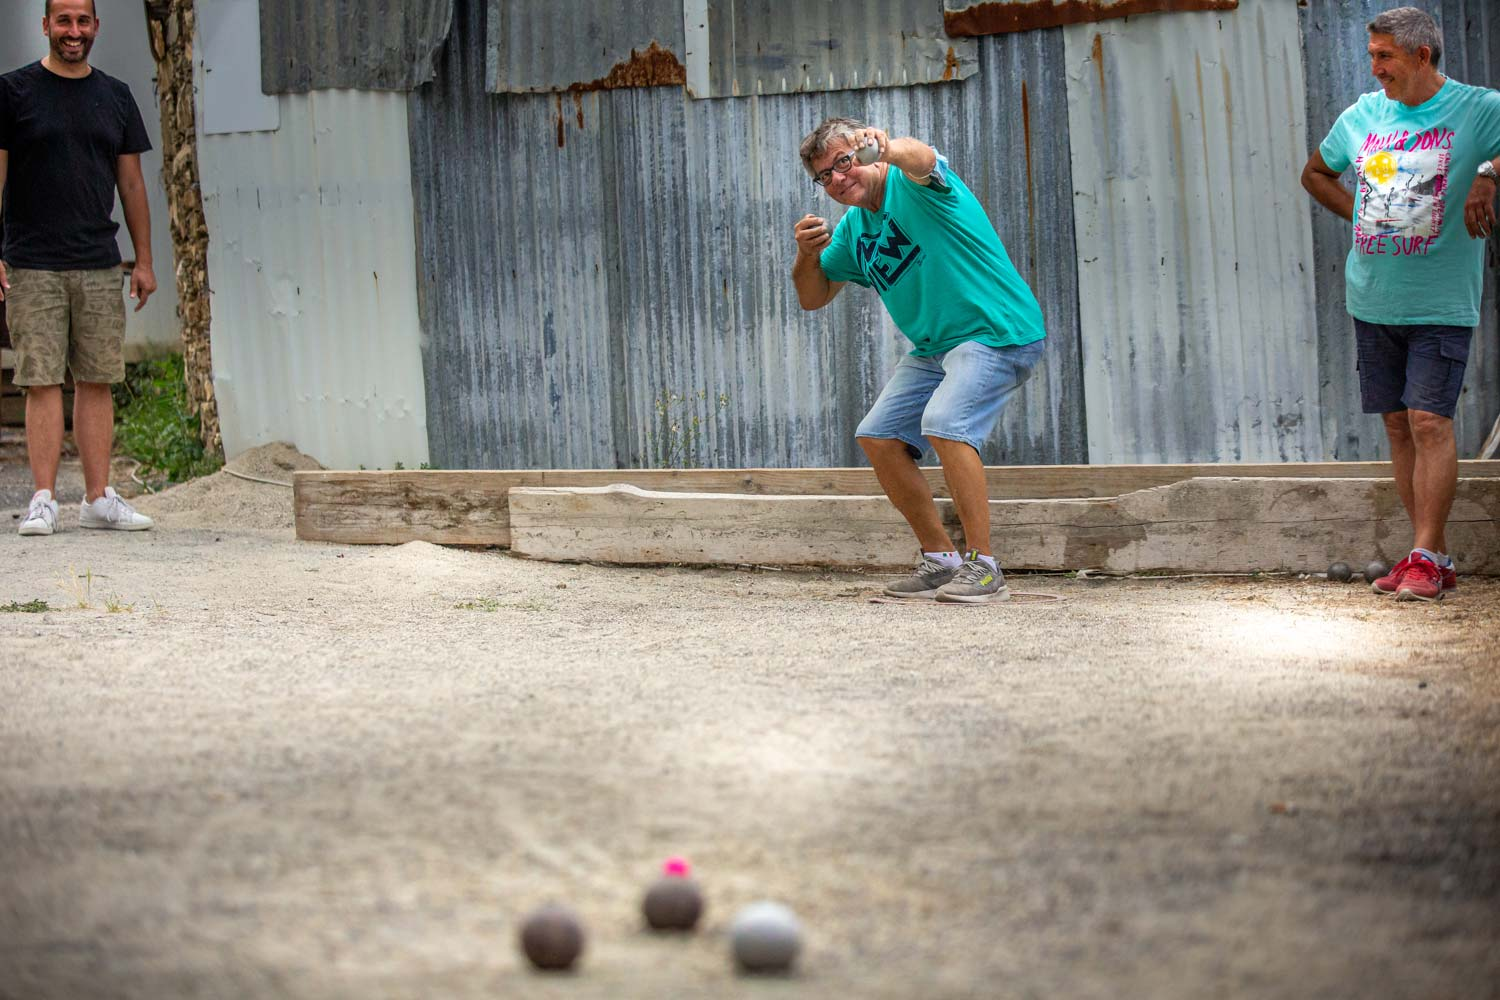 Bocce ball, wood-fired pizza, and generous Italian friends